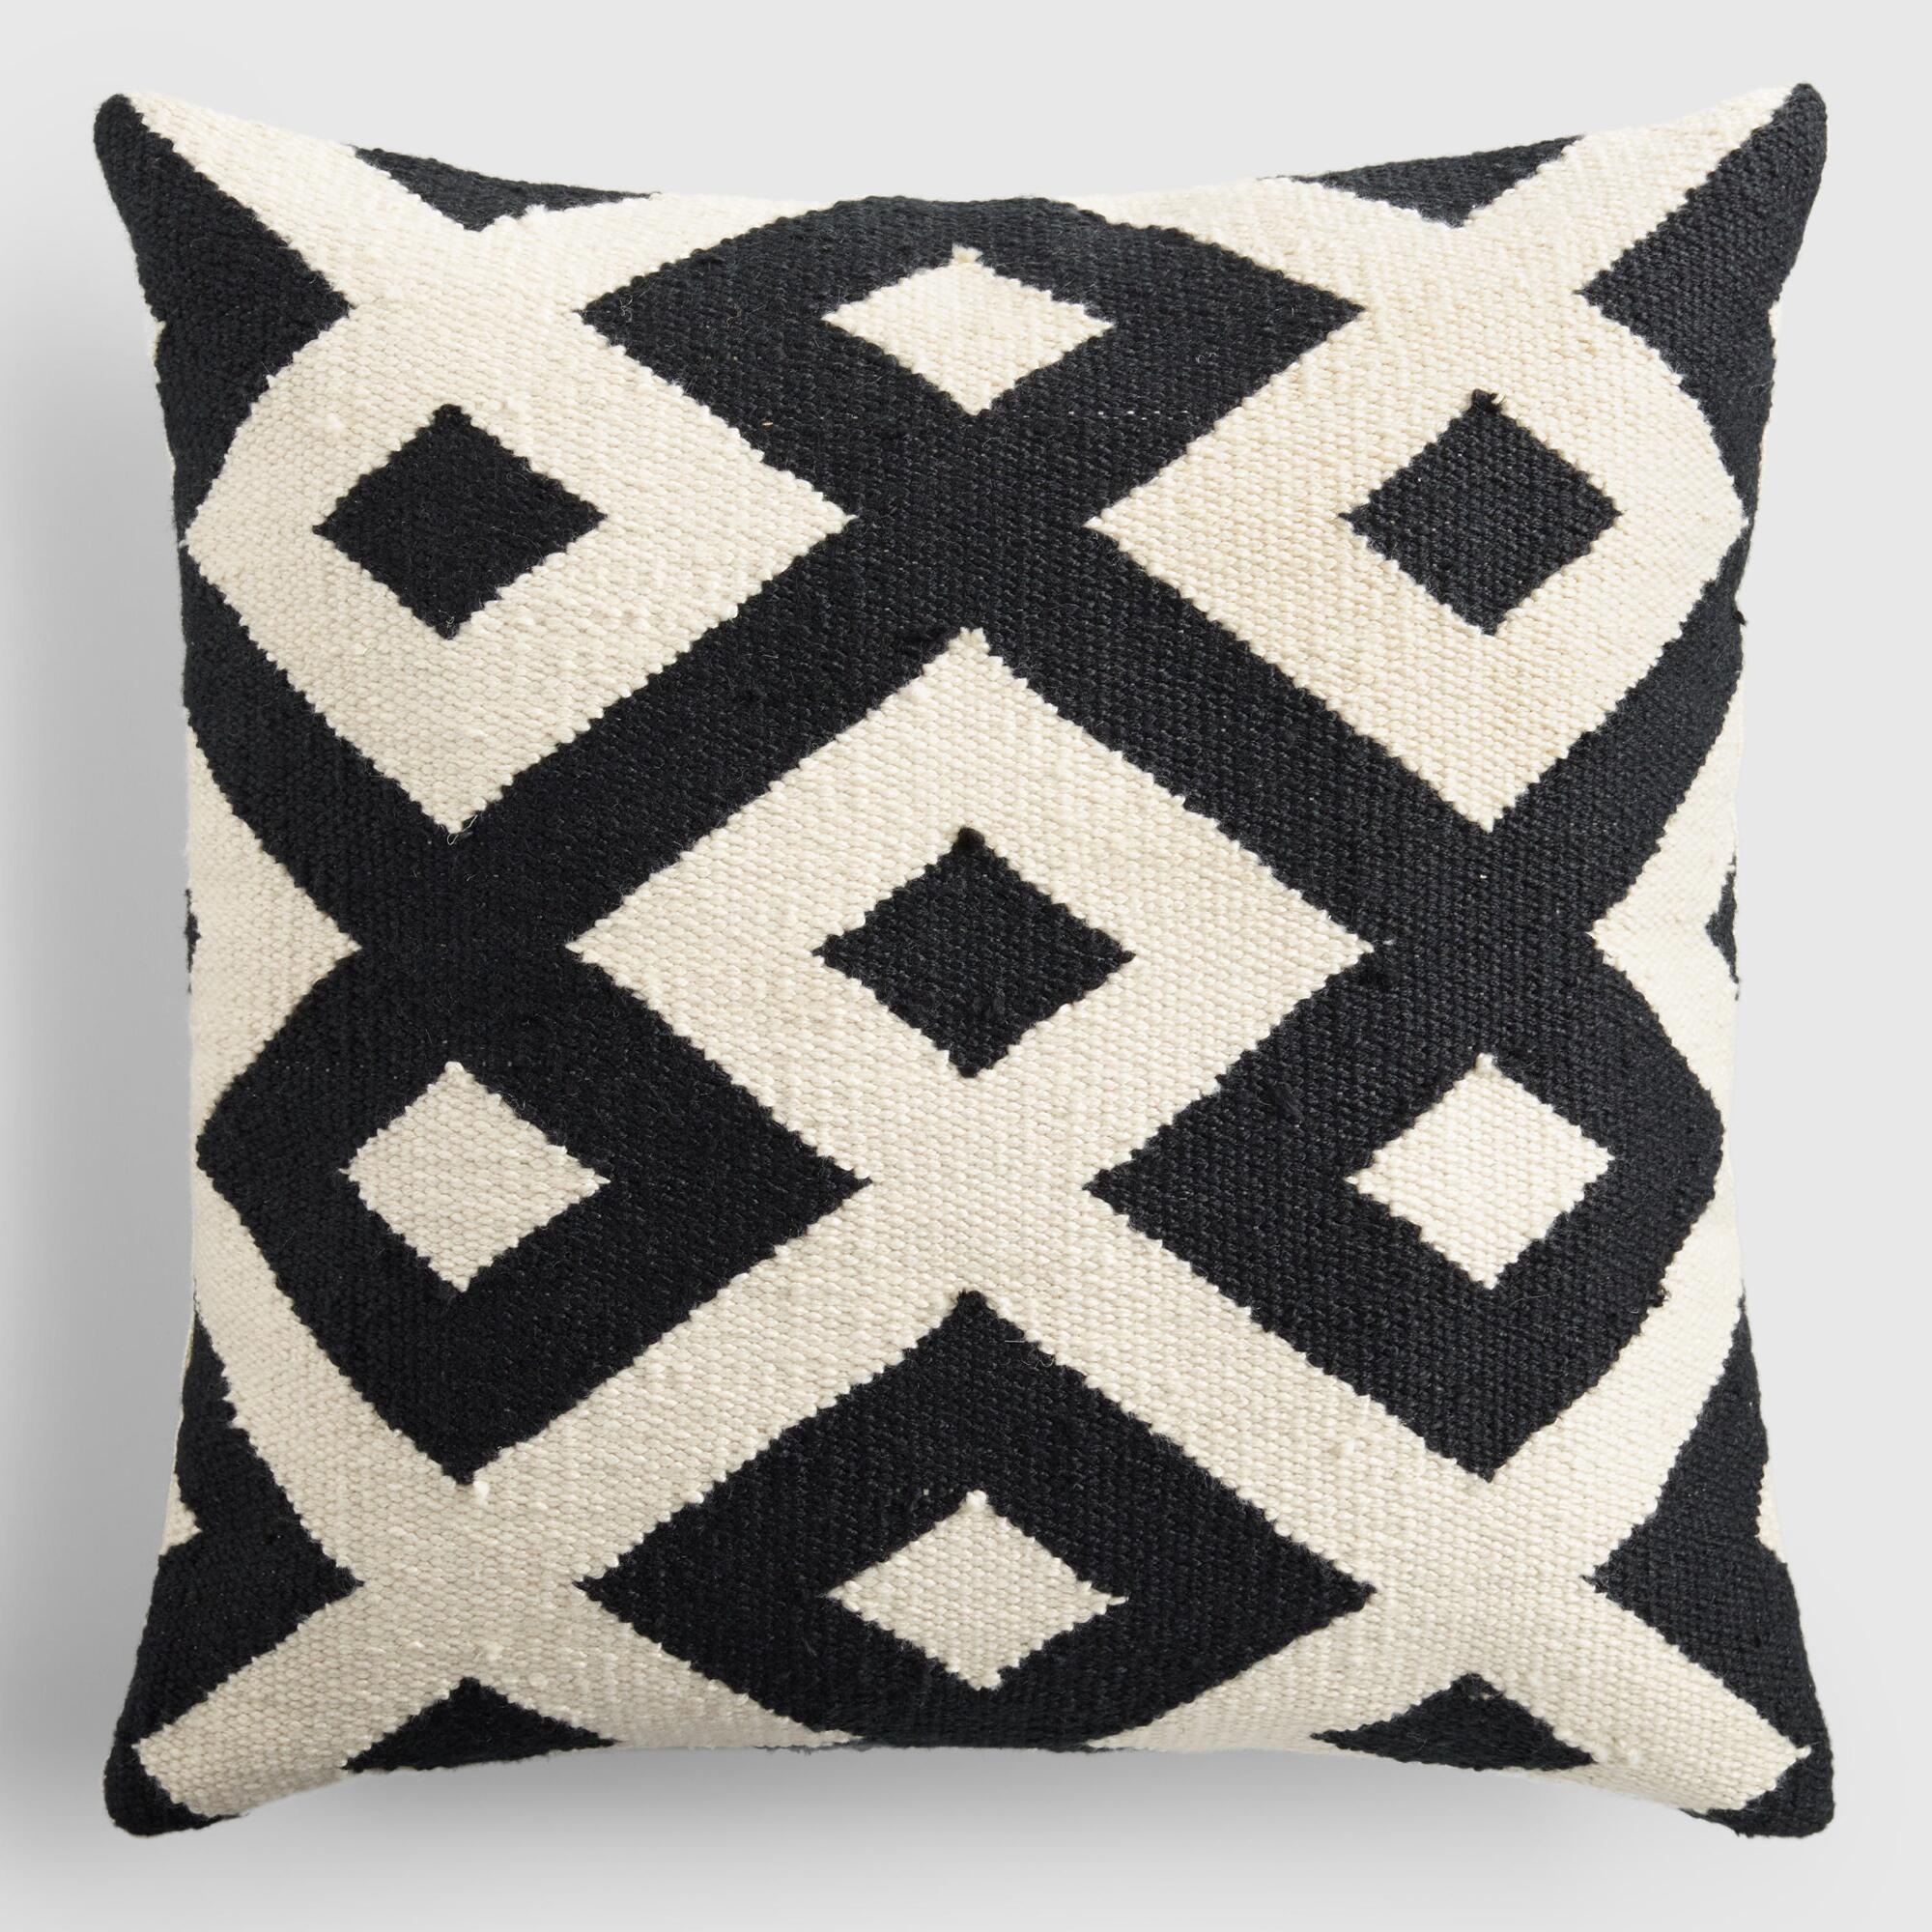 Black and Ivory Geometric Indoor Outdoor Patio Throw Pillow - Polyester - 18